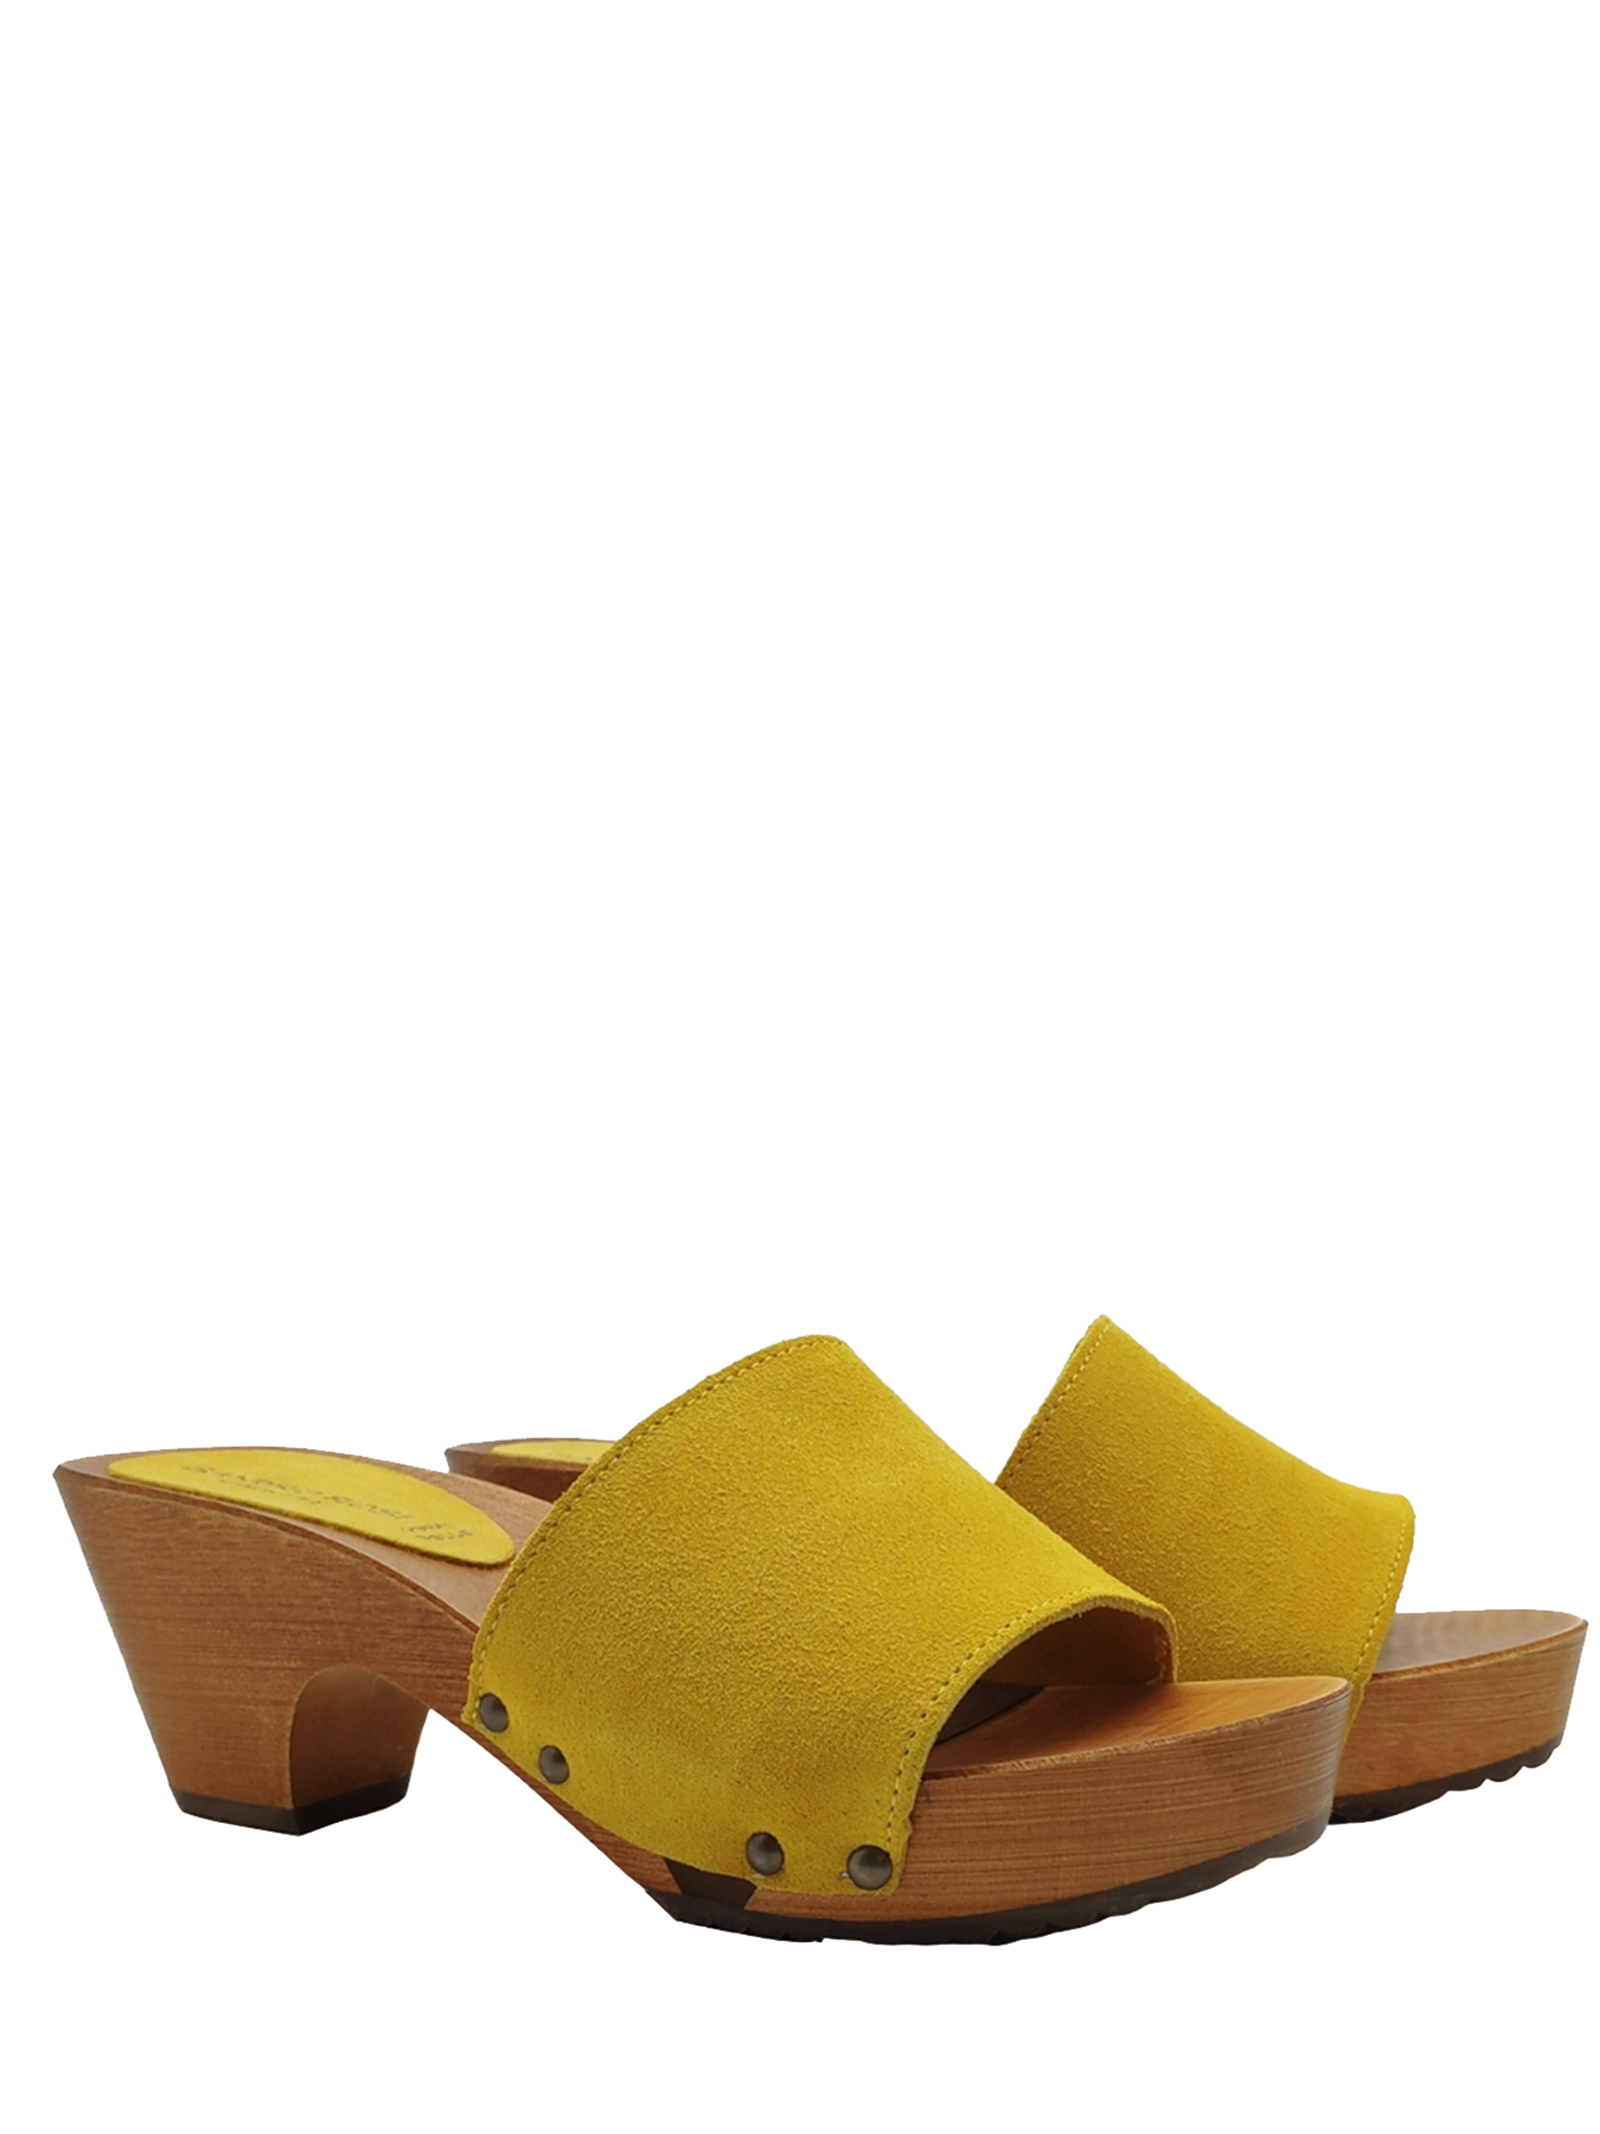 Women's Shoes Sandals Clogs in Mustard Suede with Nailed Upper and Wooden Wedge Sandro Rosi   Sandals   7056008